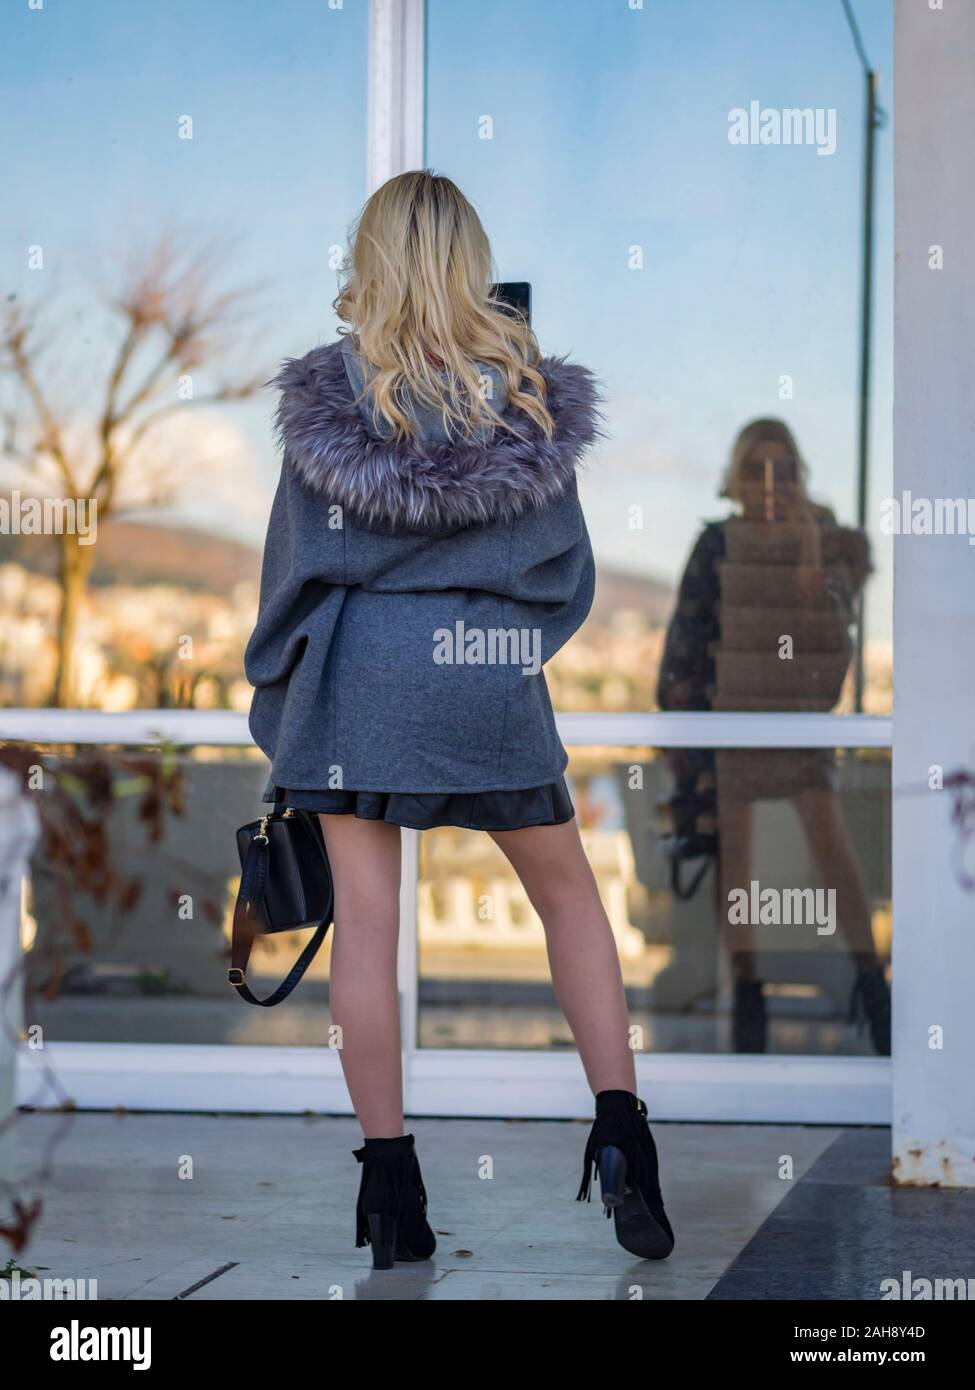 Fanciful blonde young lady is taking selfie in window glass reflection view from rear back behind model released release MR sleek Stock Photo